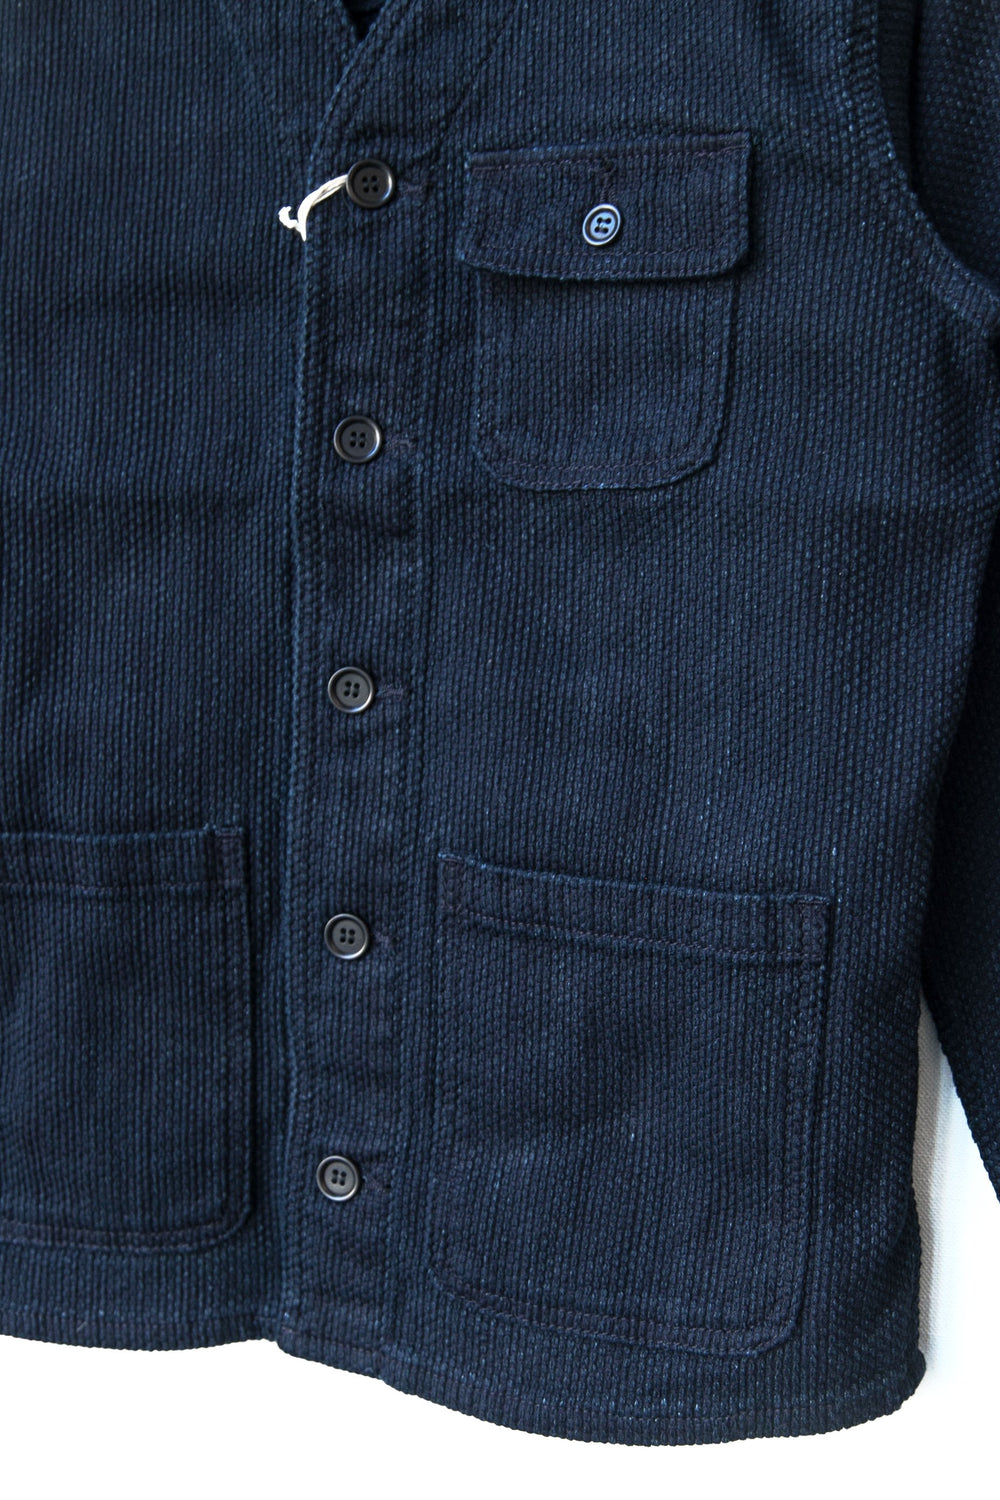 NO-COLLAR SASHIKO JACKET